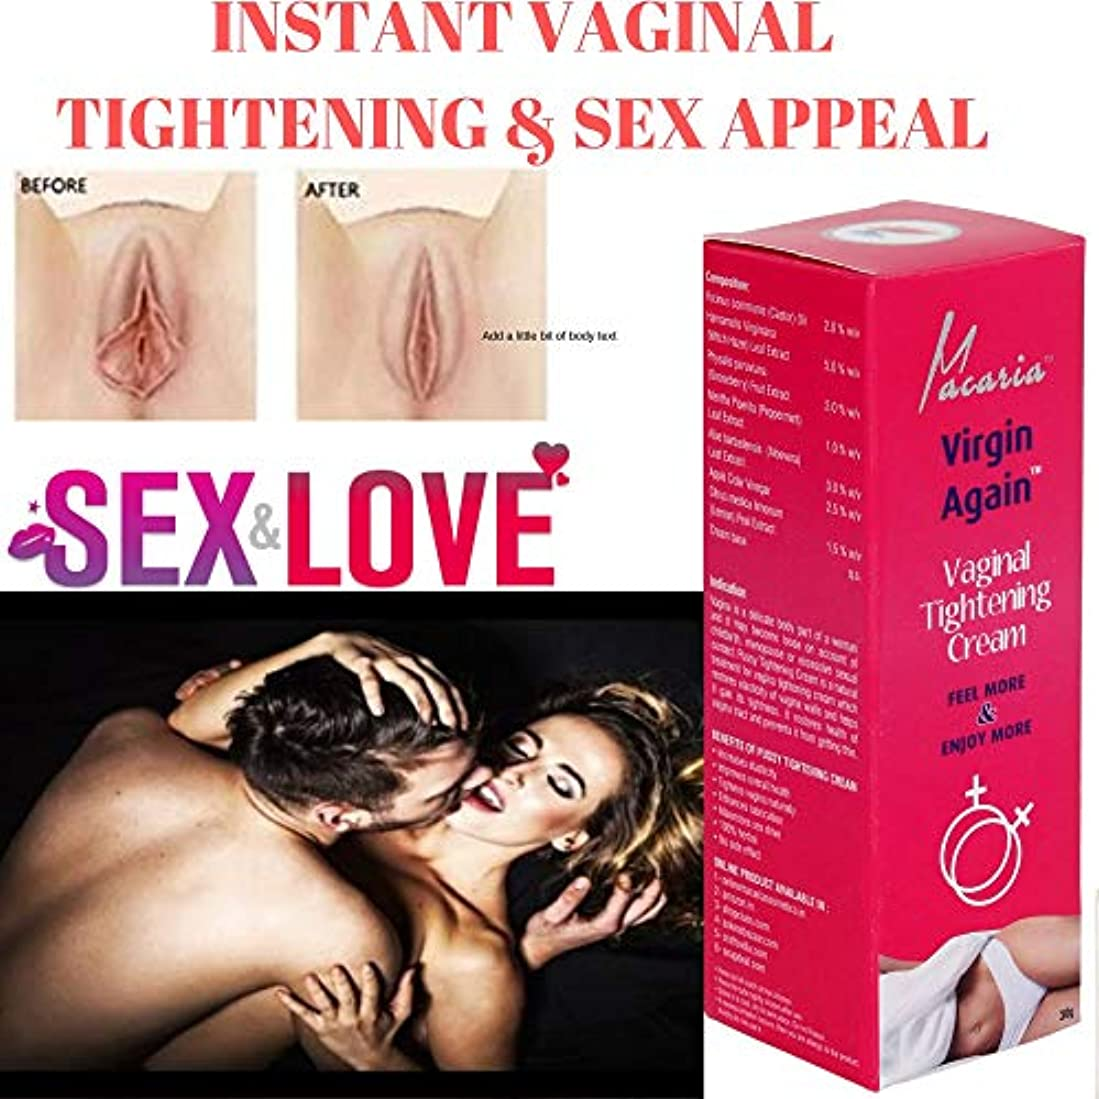 傾向朝リルVIRGIN AGAIN CREAM (VAGINAL VAGINA TIGHTENING CREAM GEL LOTION